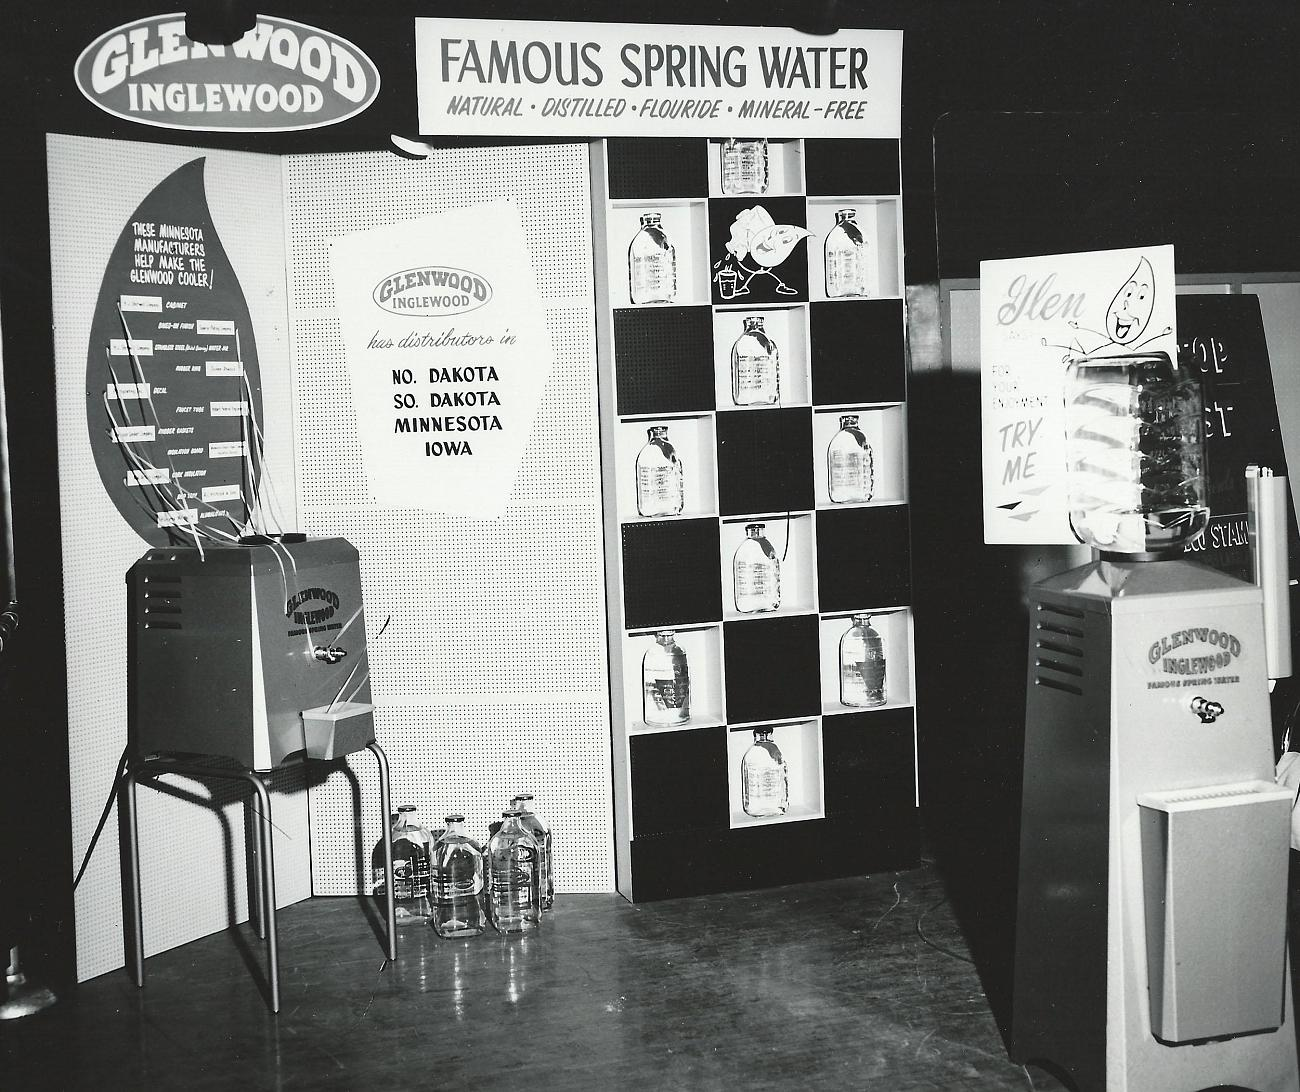 Tradeshows were commonplace for the Glenwood-Inglewood company in their heyday. This is a glimpse at one of their setups in the 1950s.